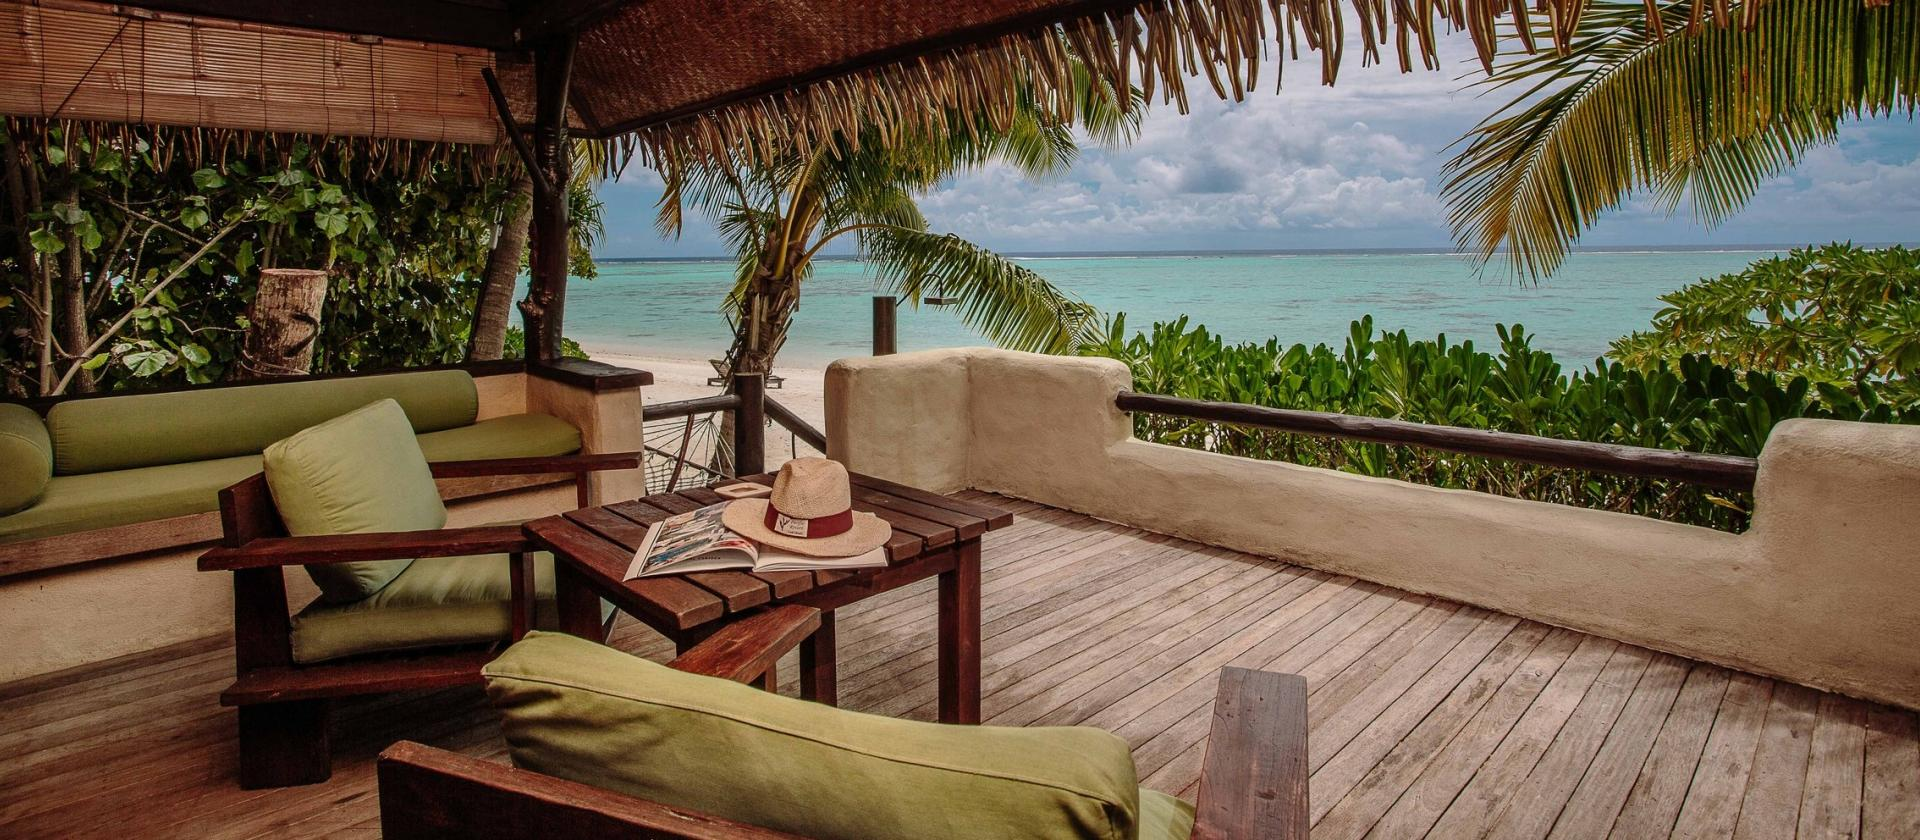 Premium Beachfront Bungalow